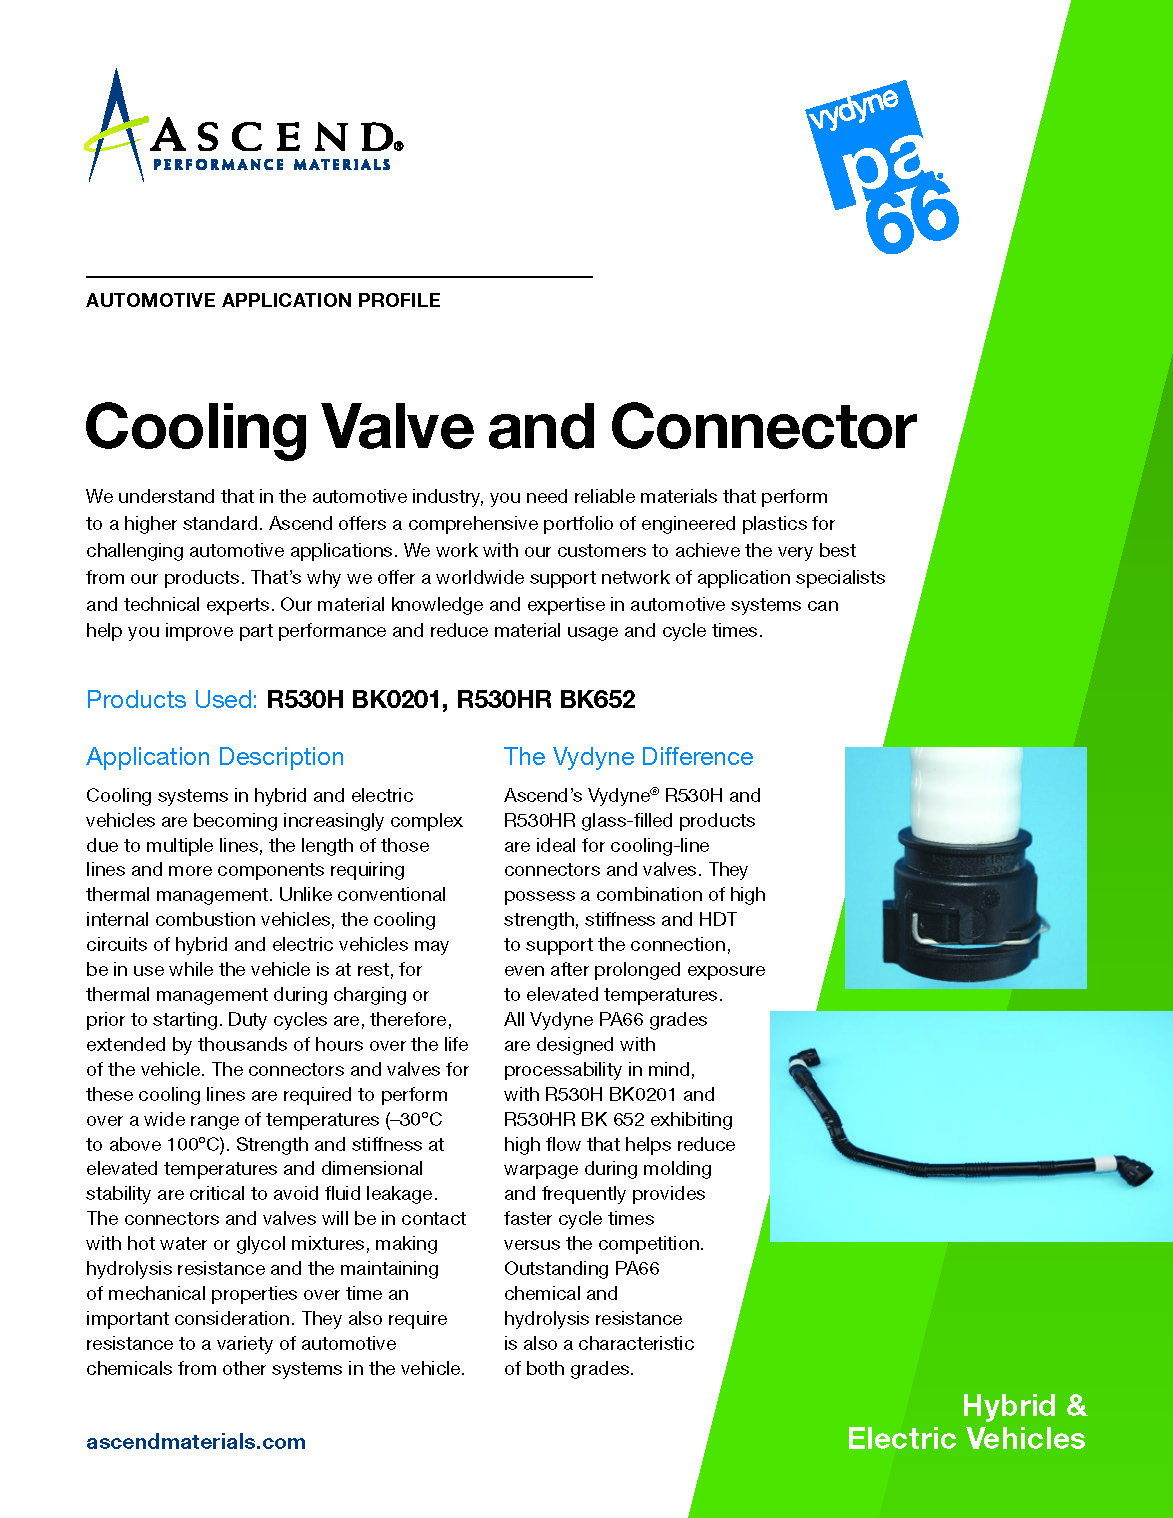 Auto EV application: cooling valve and connector